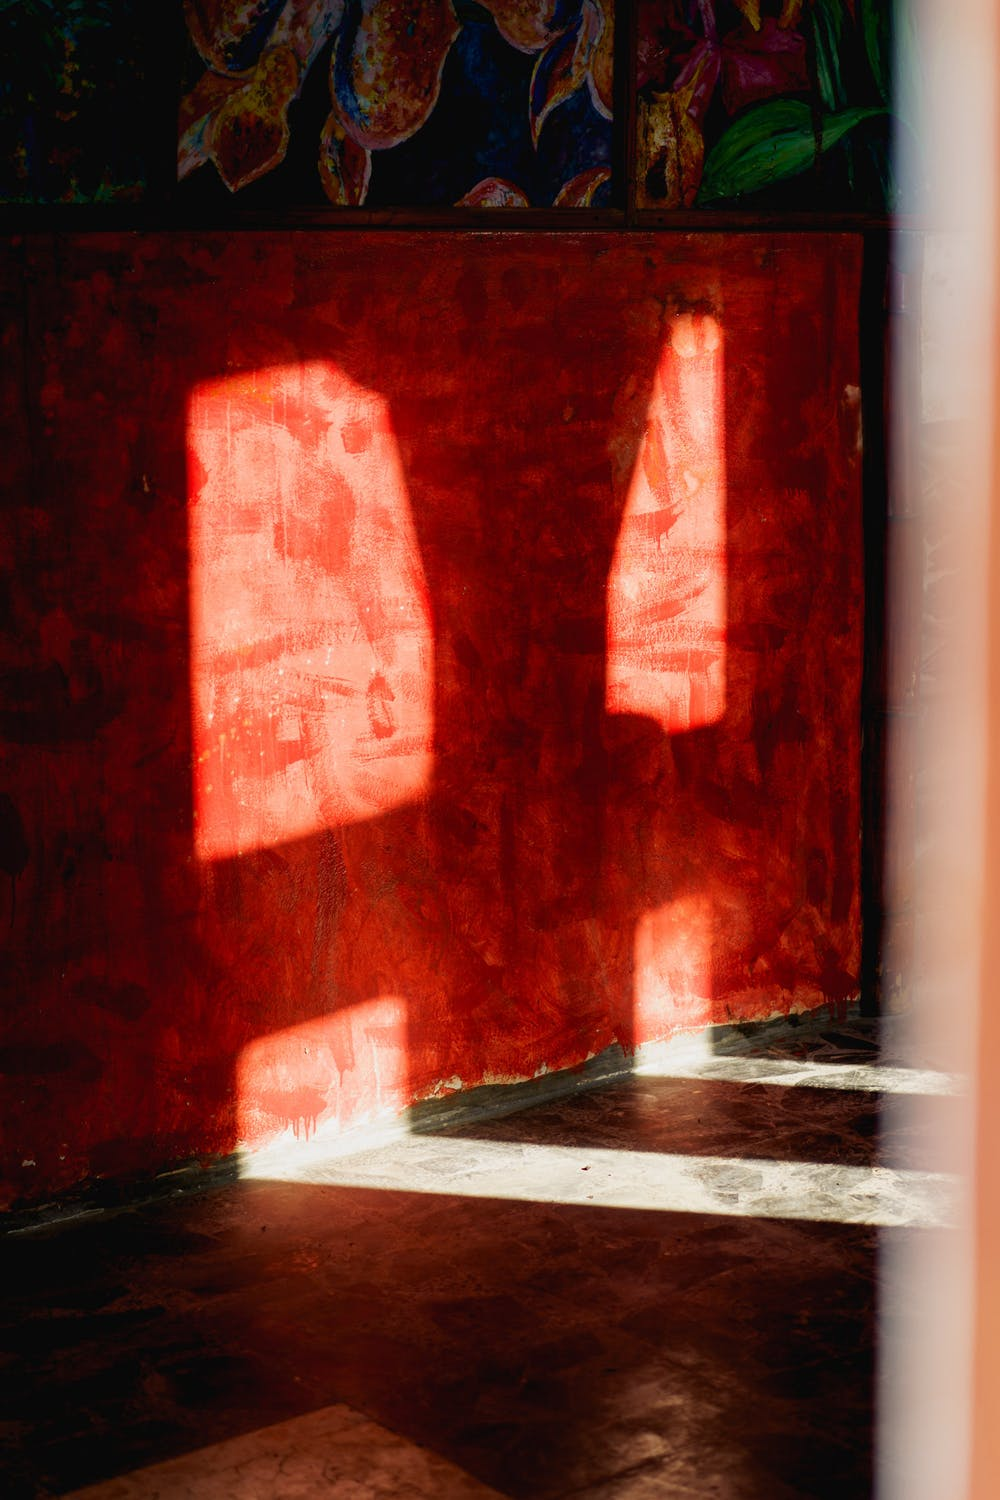 Shadows cast from light passing through concrete outlines against a red painted wall